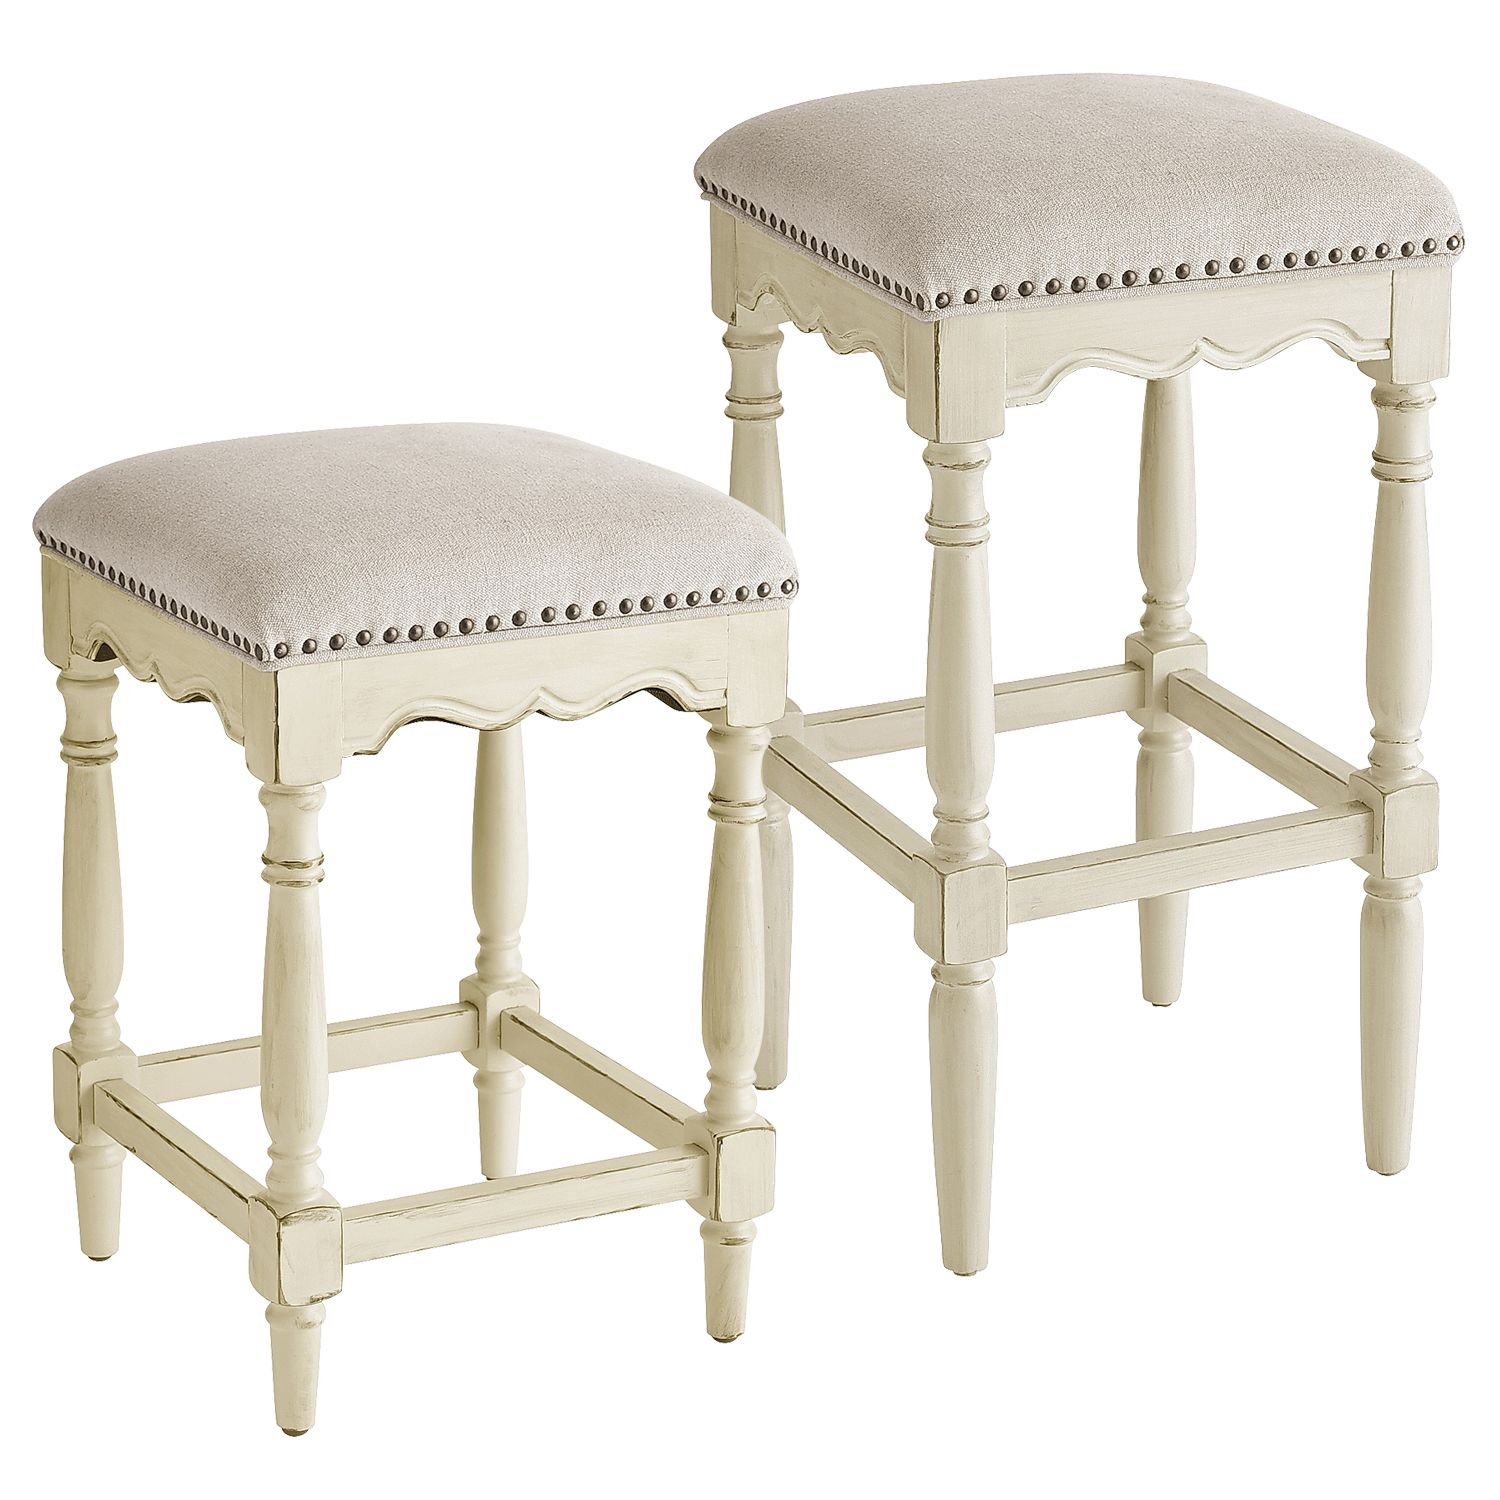 house of turquoise laura u interior design bar stools with classic turned legs carved apron plush linen seat and brass nailhead trim the french inspired ellie brings vintage style elegance to your counter or